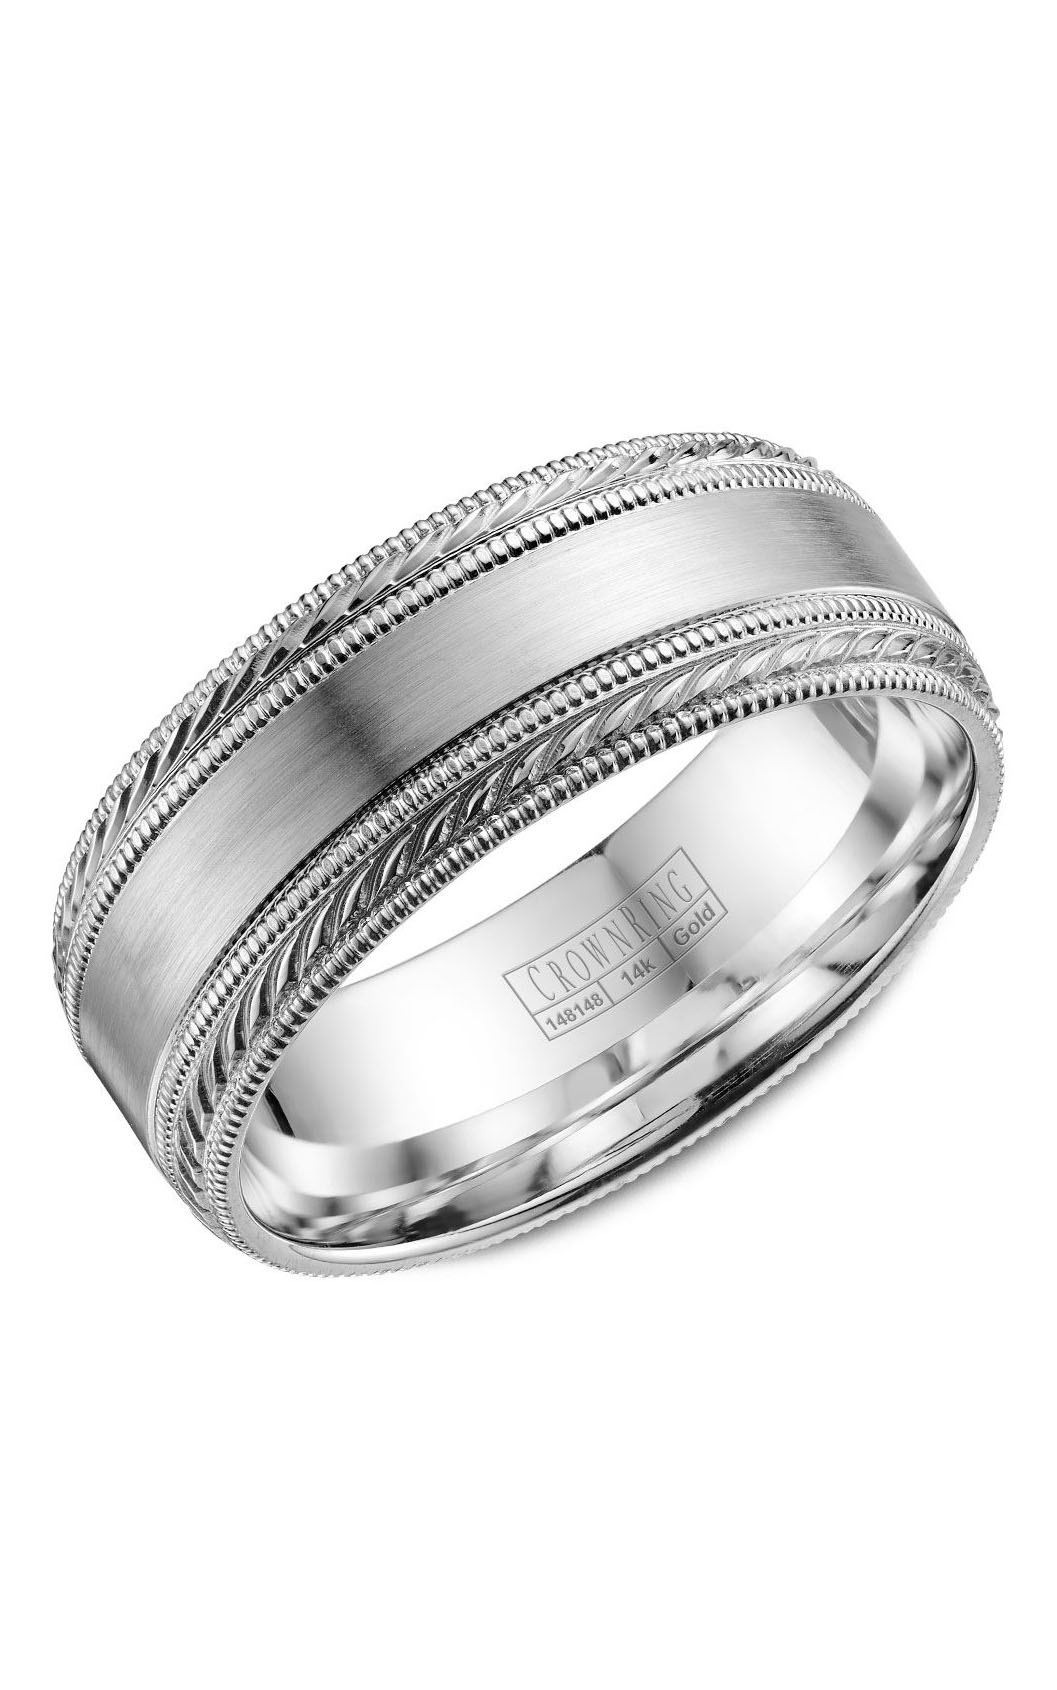 Crown Ring Men's Wedding Band WB-034C8W product image